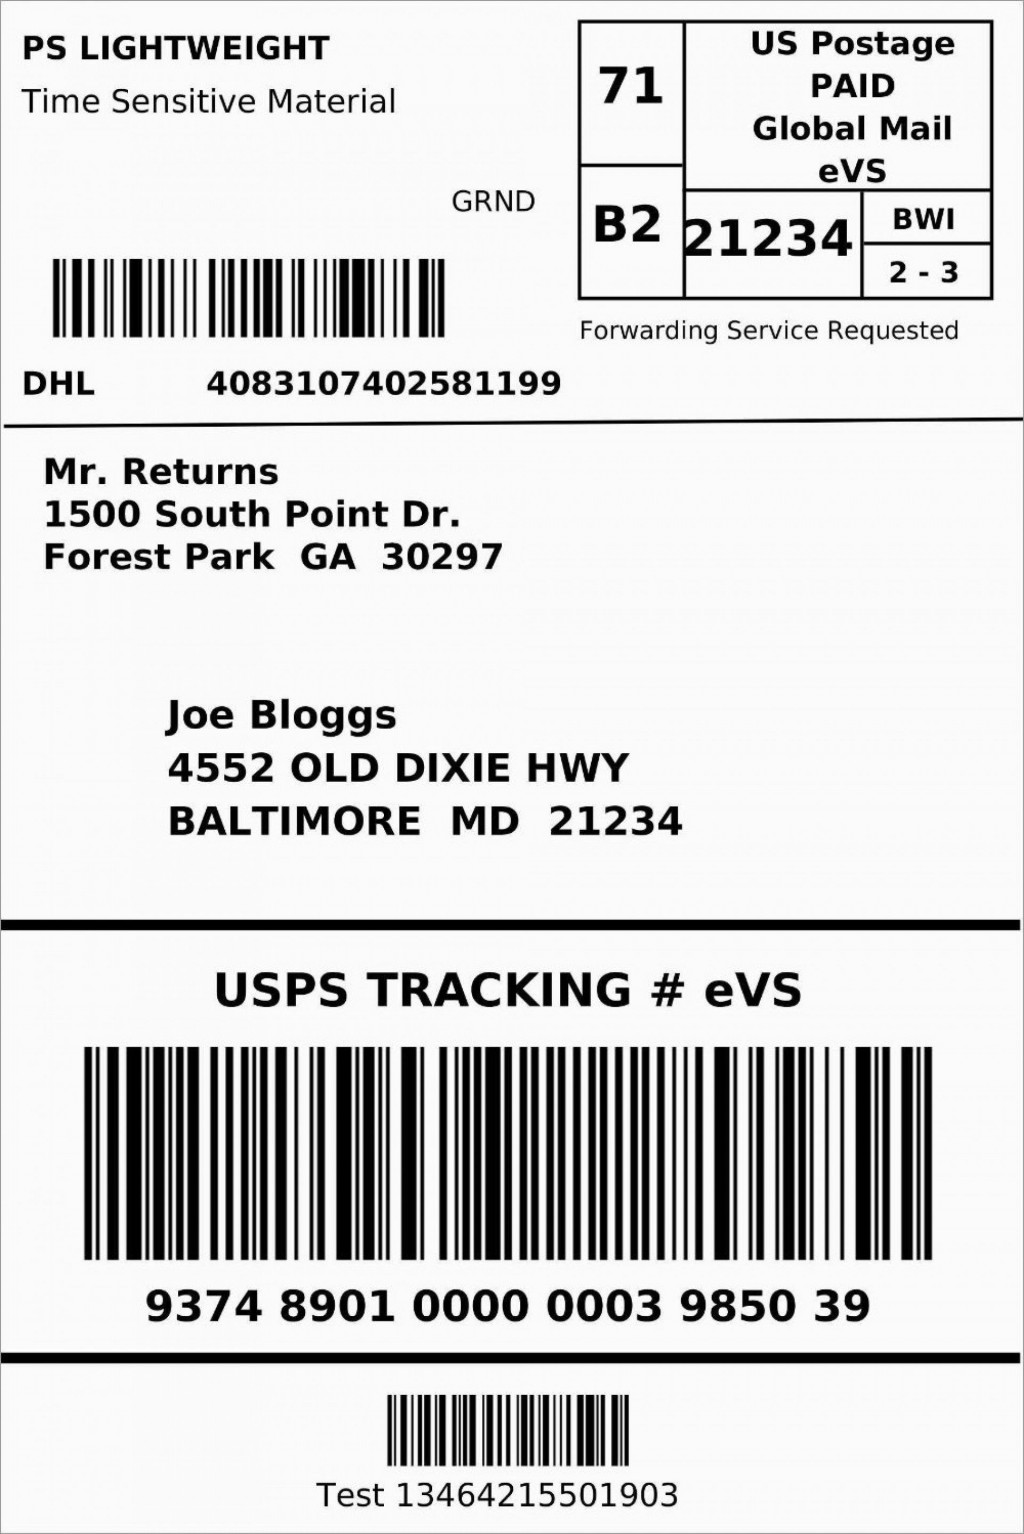 009 Beautiful Up Shipping Label Template Free Concept Large